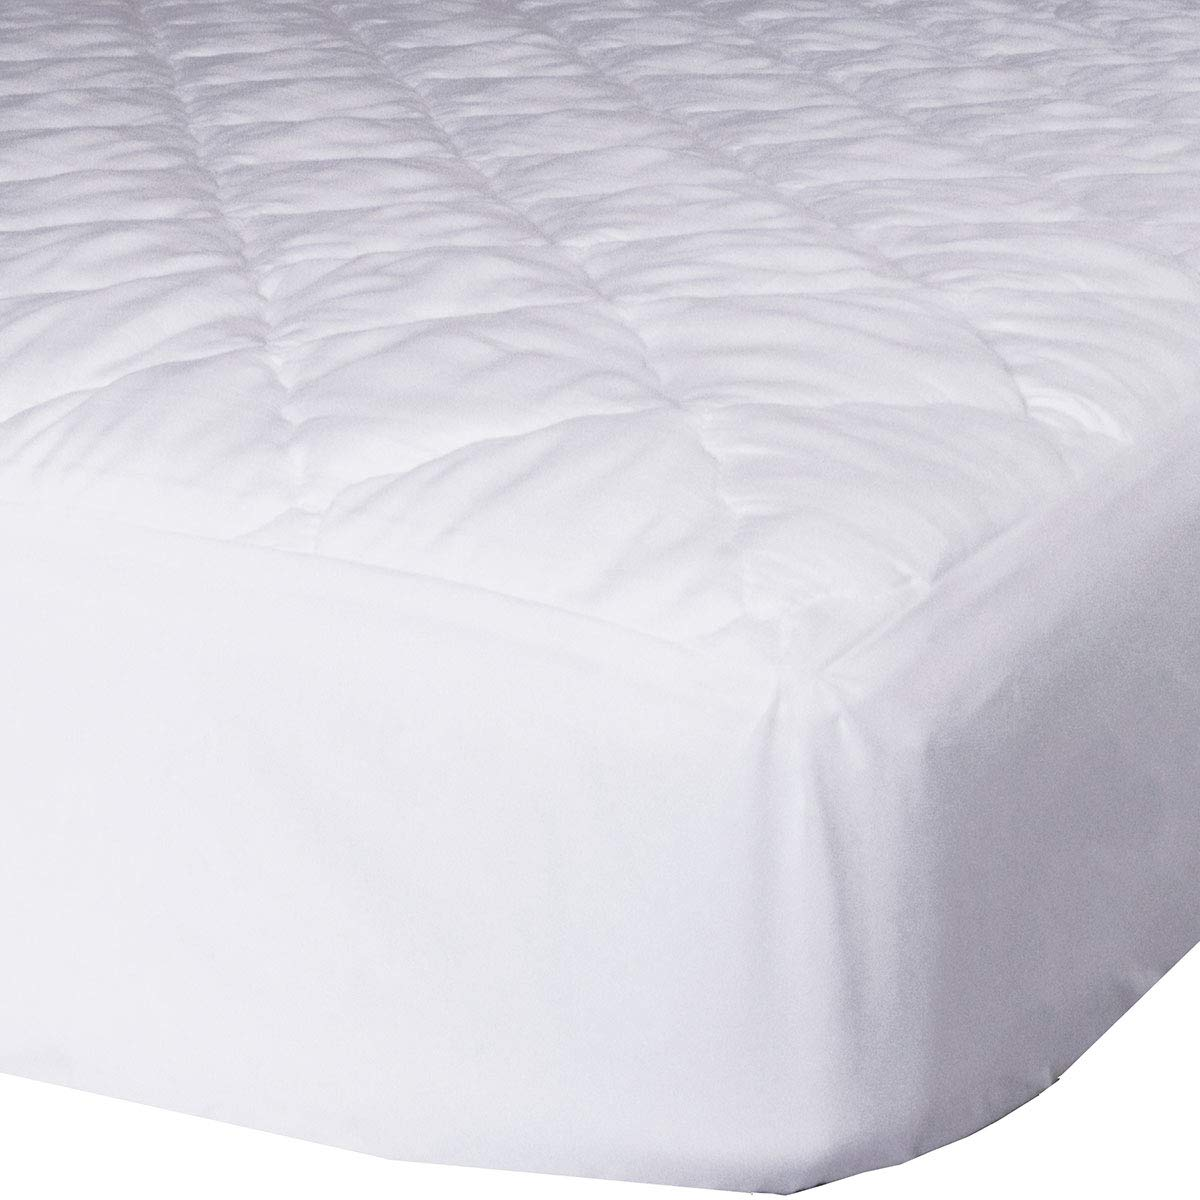 Amazon.com: AB Lifestyles Olympic Queen Mattress Pad/Mattress